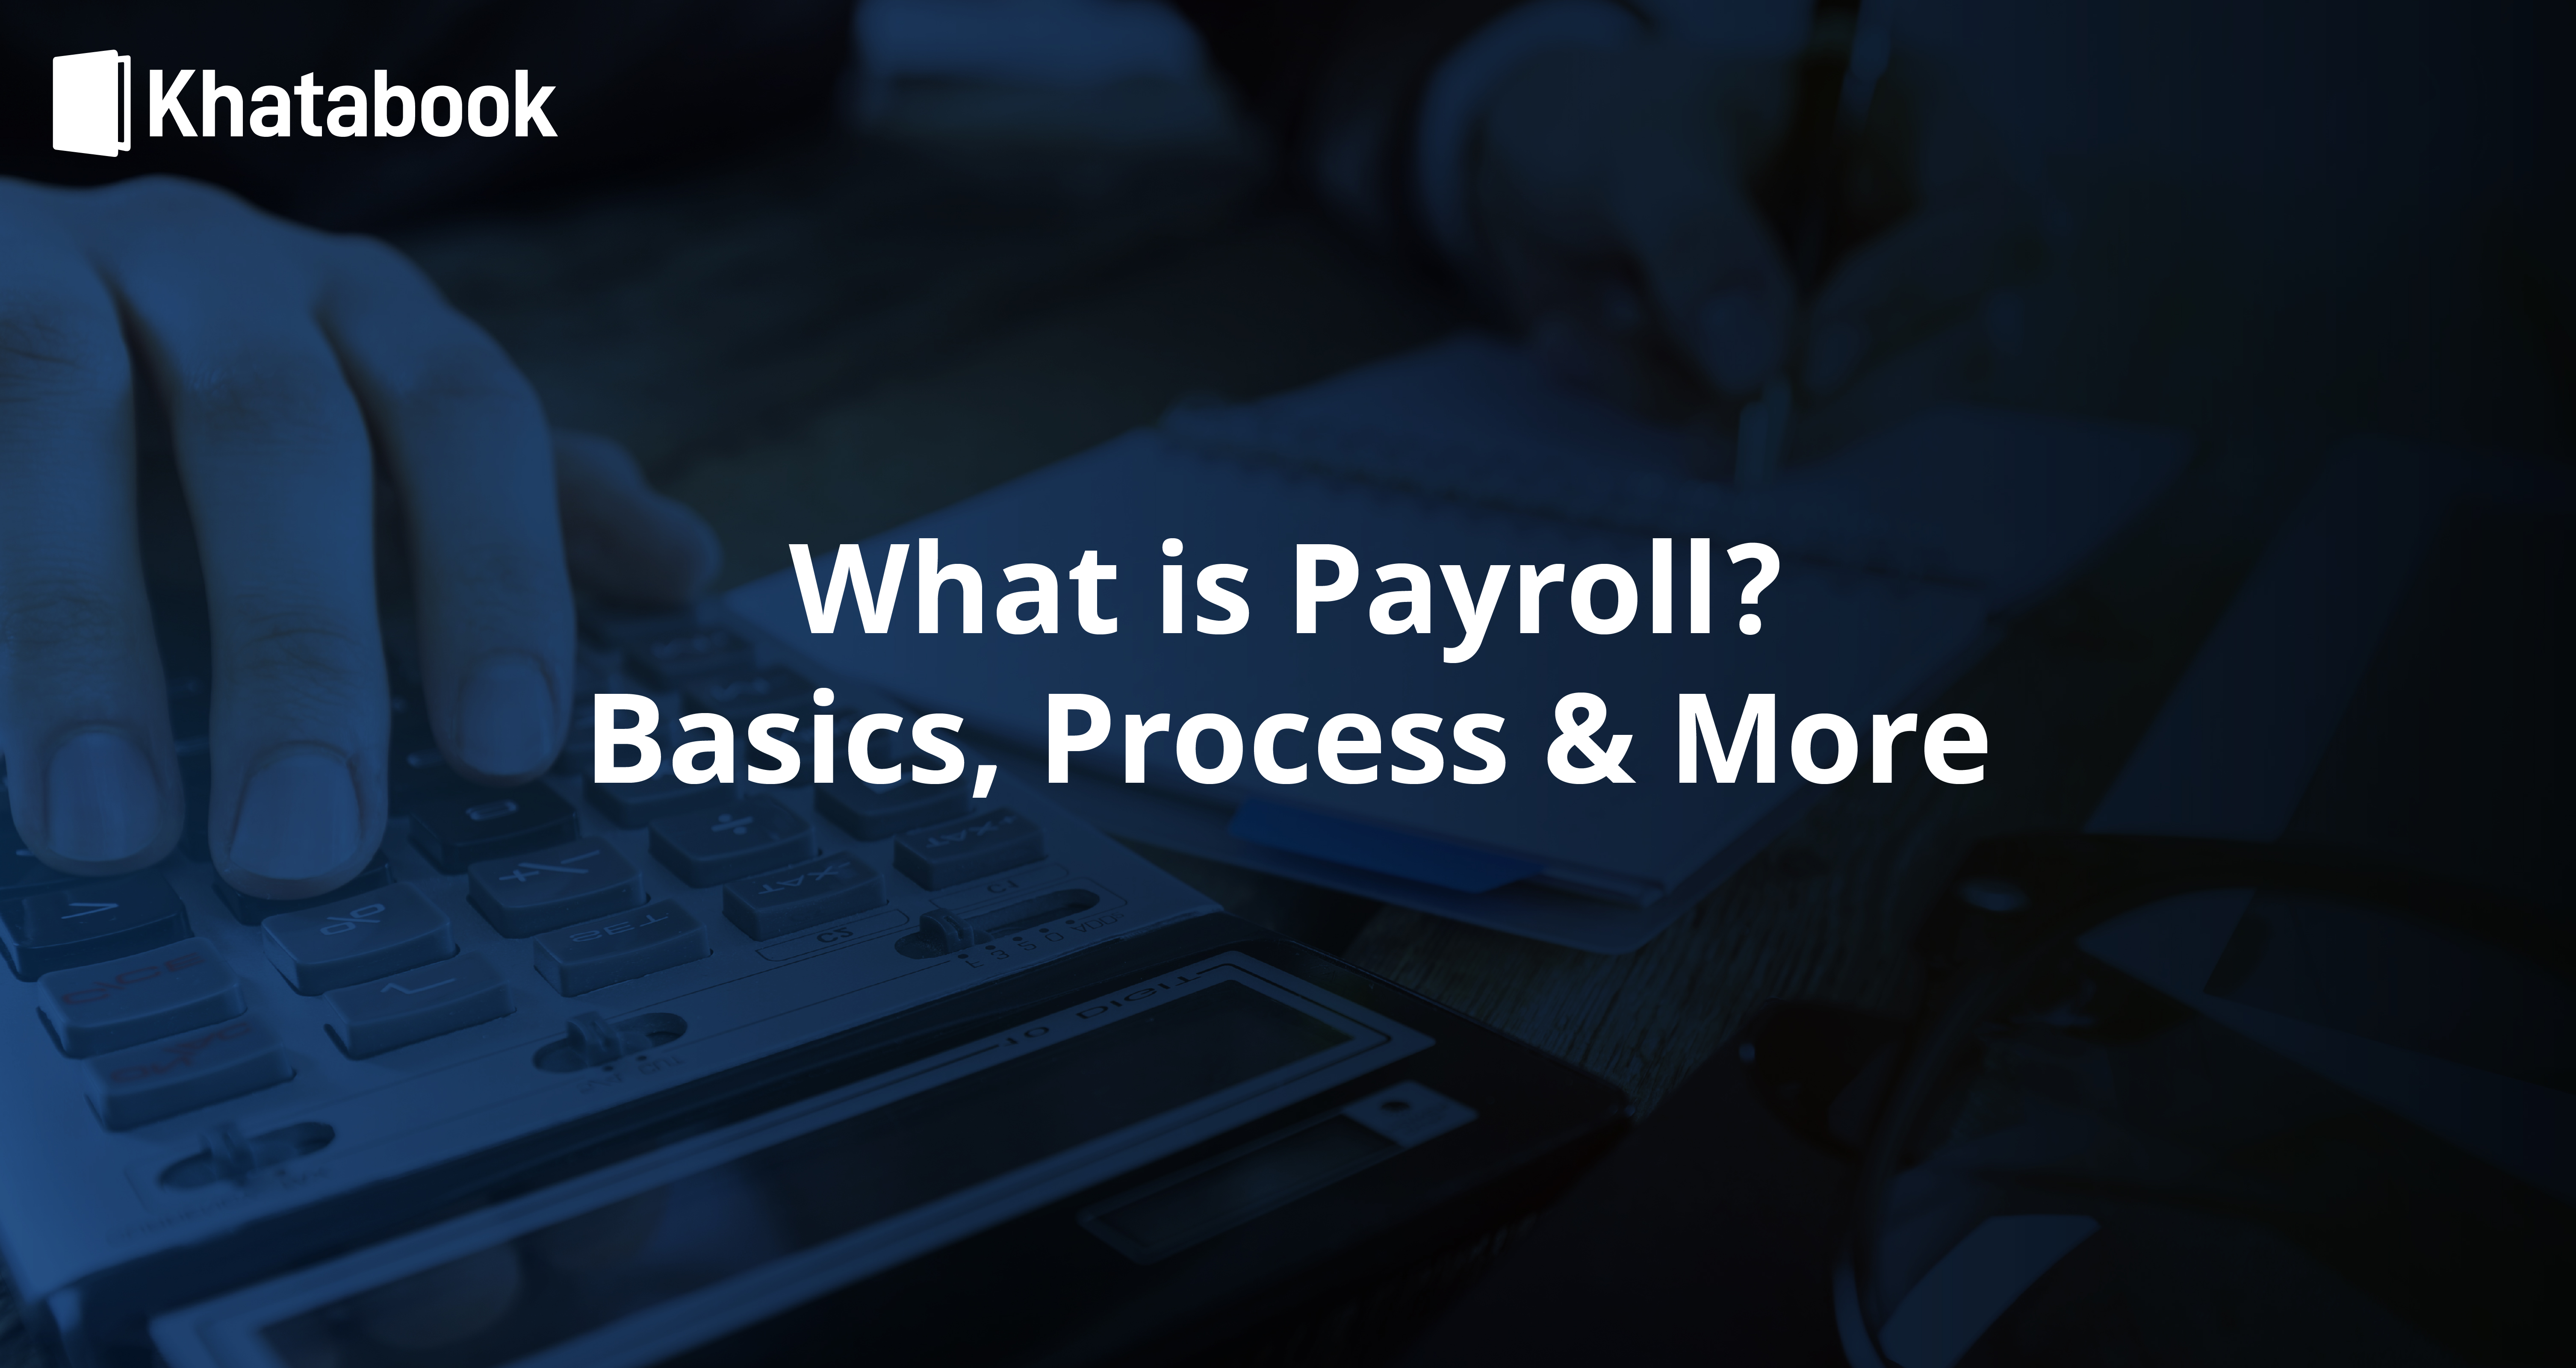 Everything You Need to Know About the Payroll Process